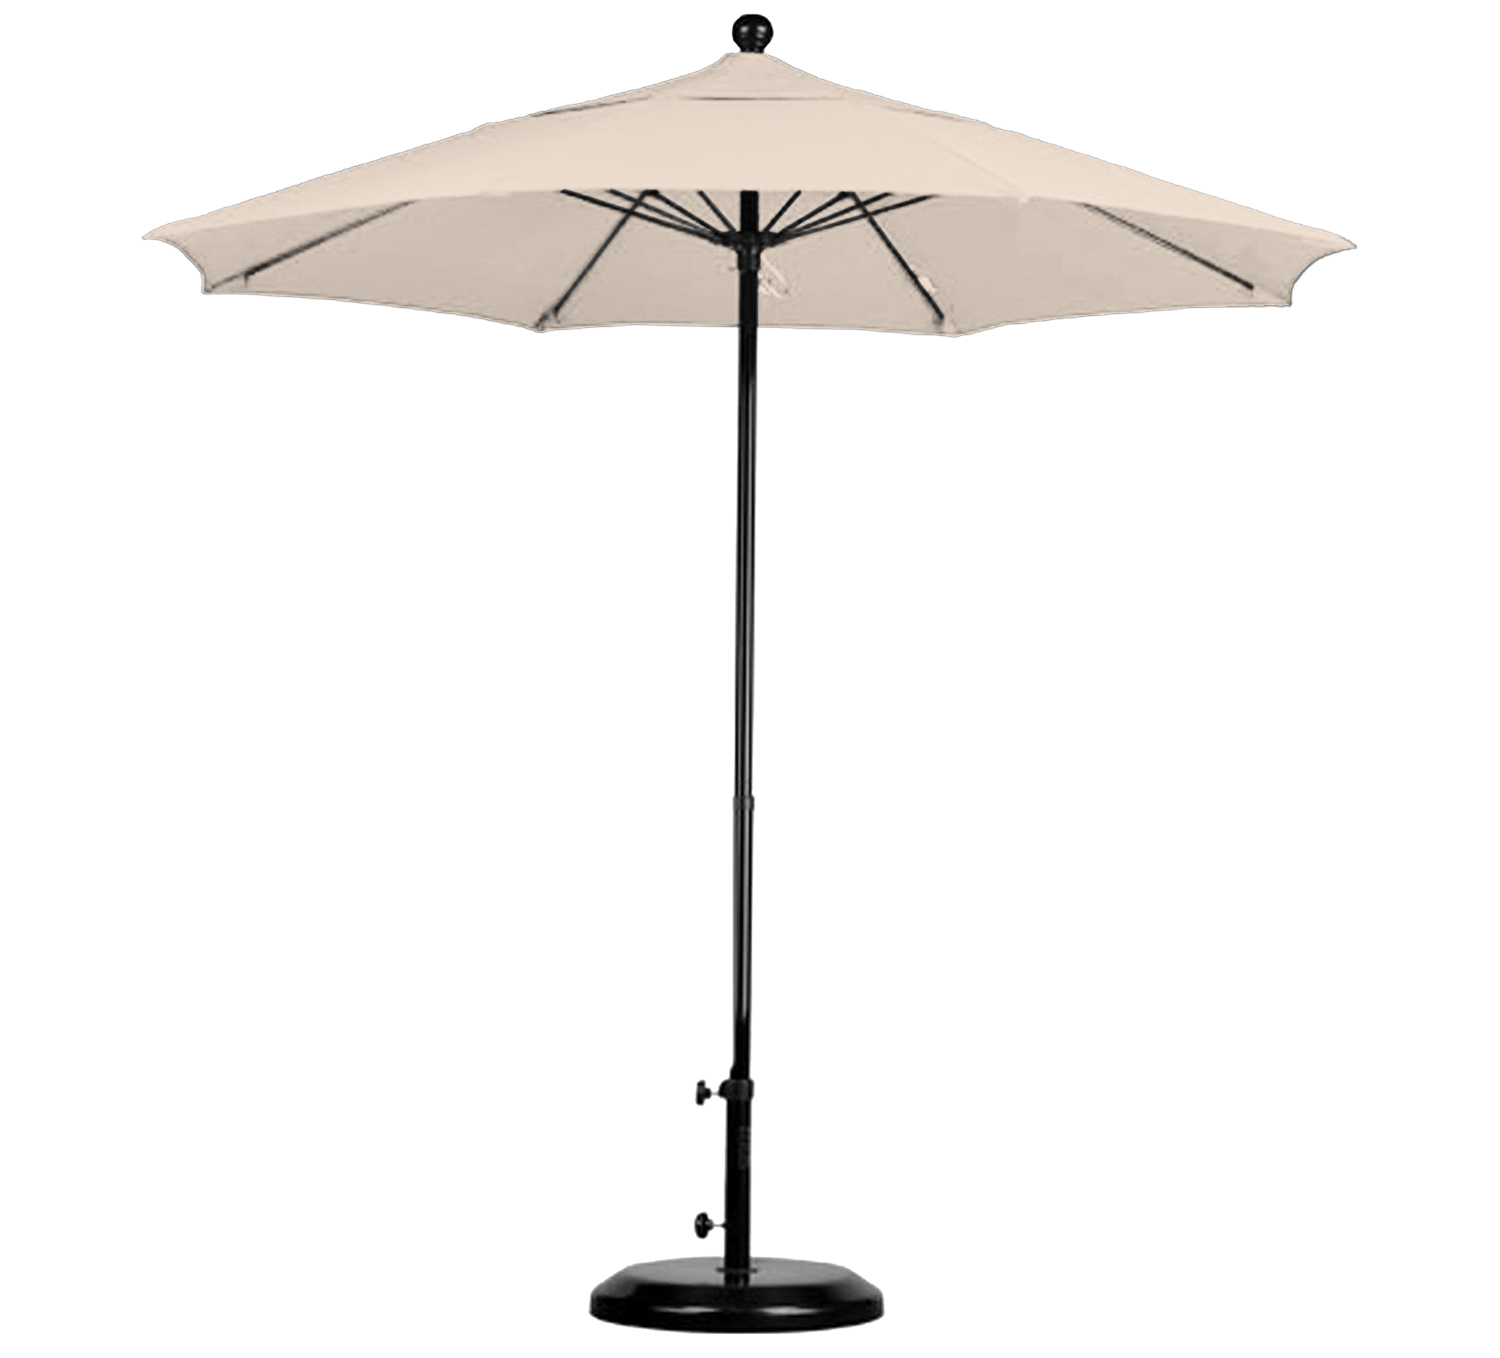 Awesome 7.5u0027 Hawaiian Tropic Patio Umbrella, With Steel Pole, Tilt Feature, And  Pulley